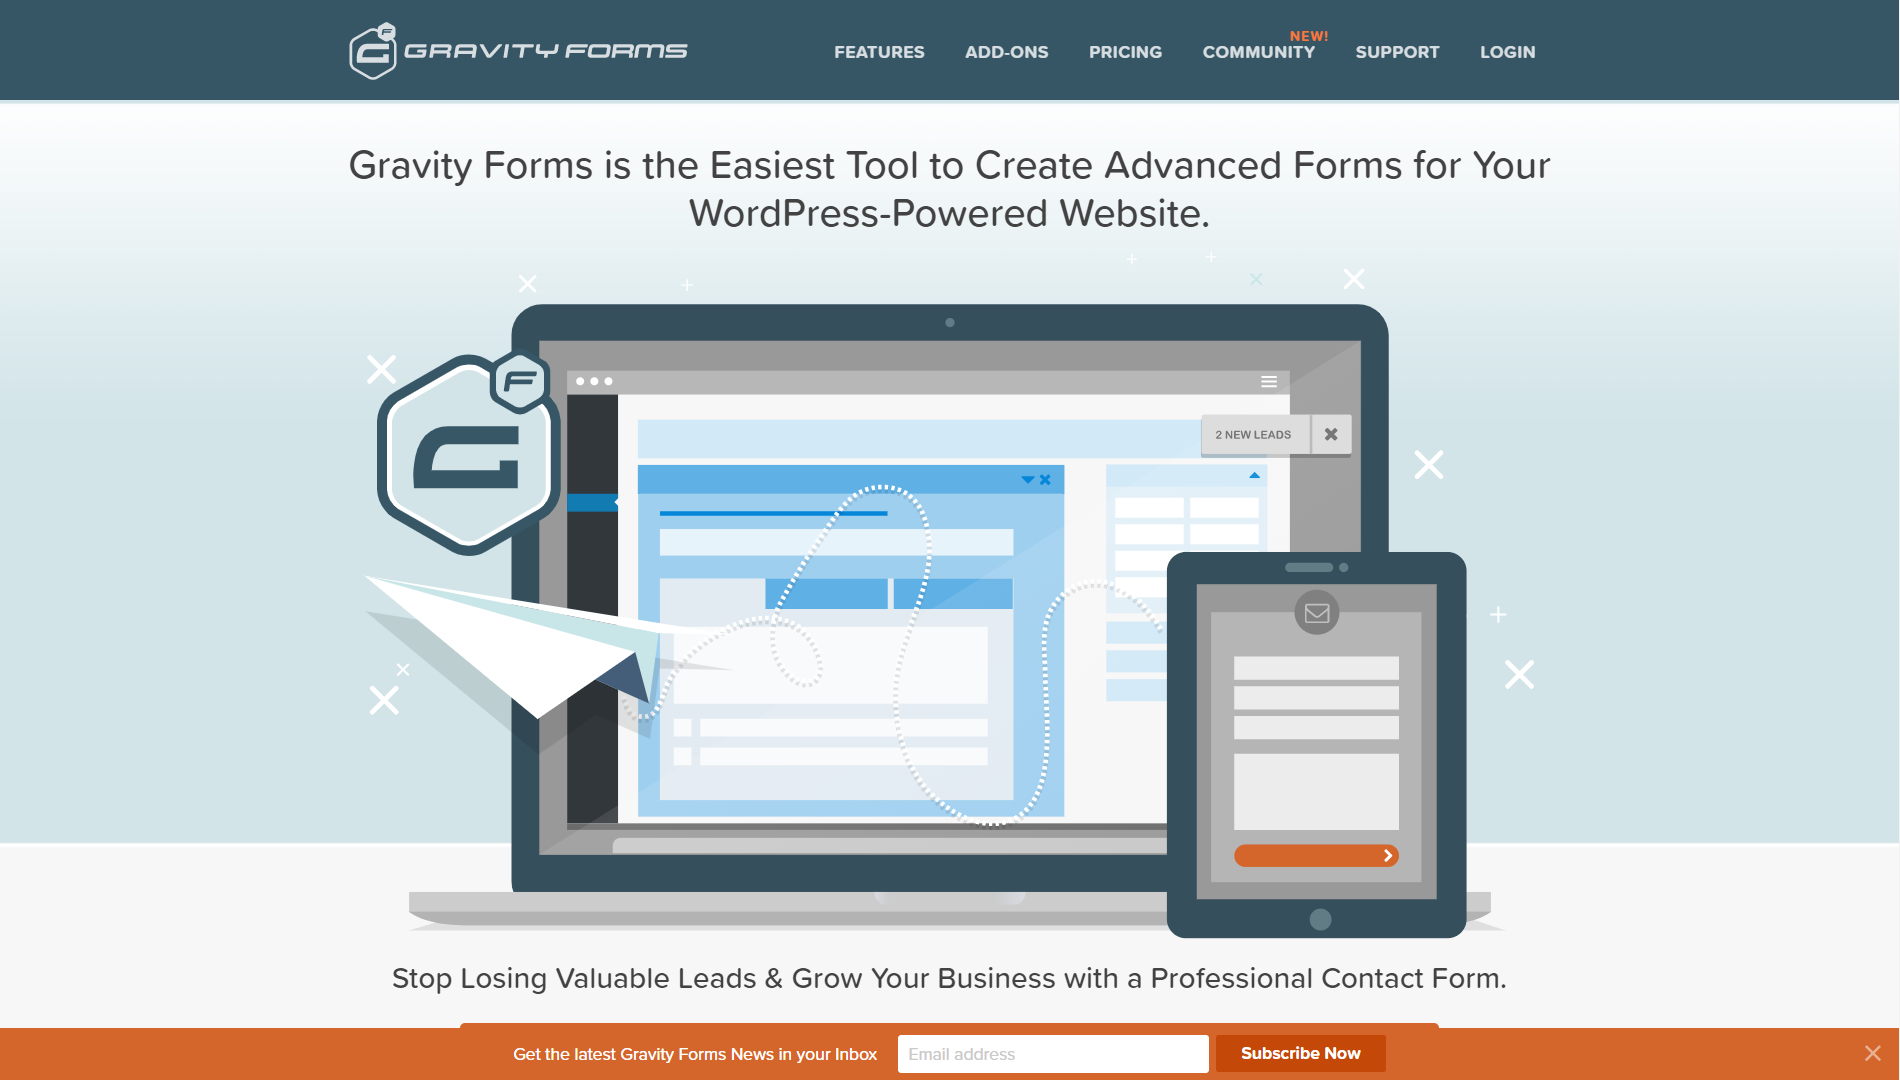 The homepage of Gravity Forms